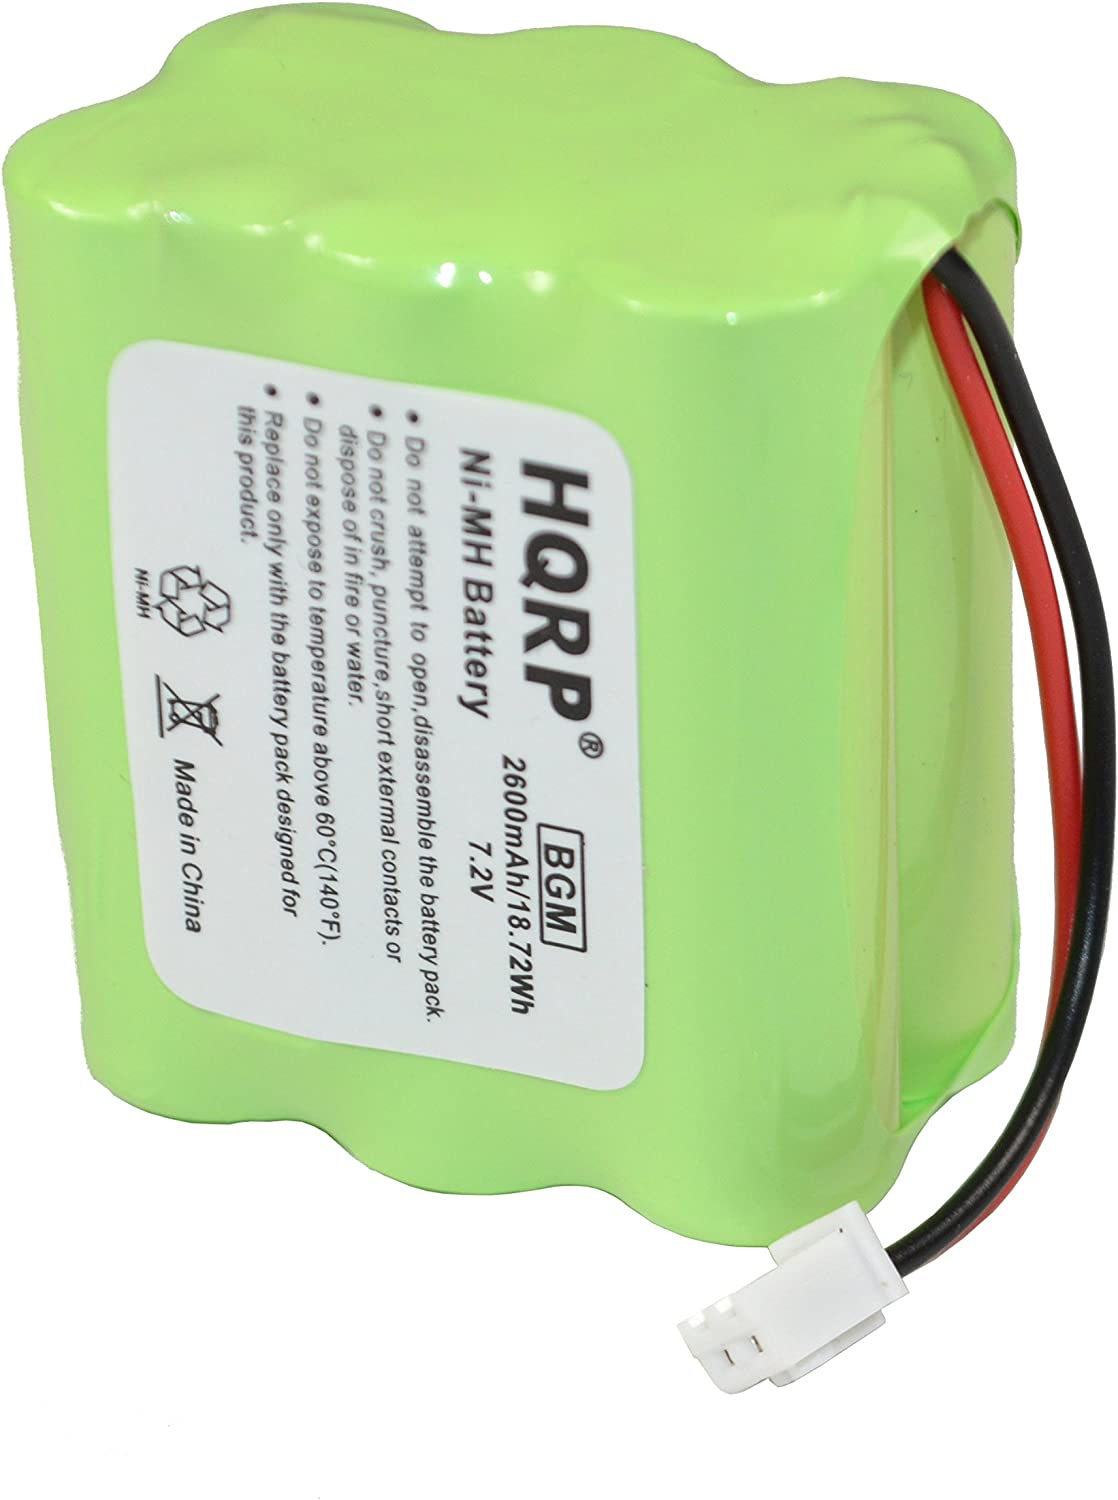 HQRP Backup Battery Compatible with 2gig BATT1X BATT2X BATT1 GC2 2GIG-CNTRL2 2GIG-CP2 GCKIT311 Go Control Panel Security System Alarm 6MR2600AAY4Z 10-000009-001